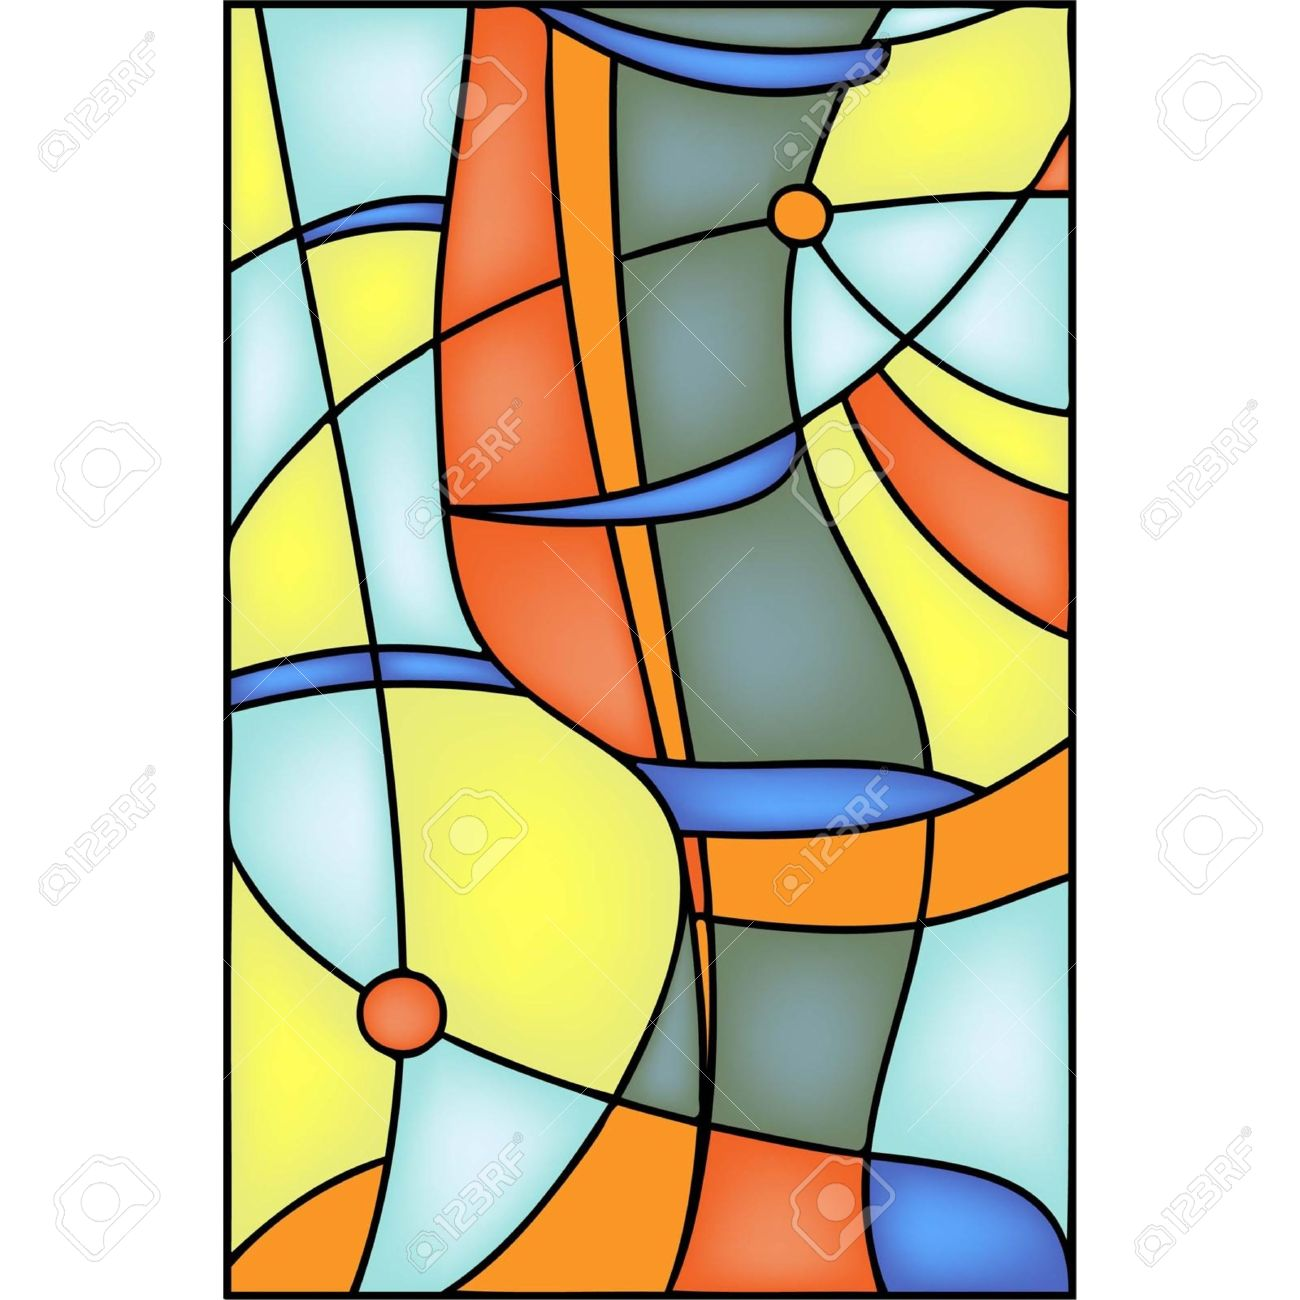 1300x1300 Groovy Stained Glass Window Designs Stained Glass Window Designs